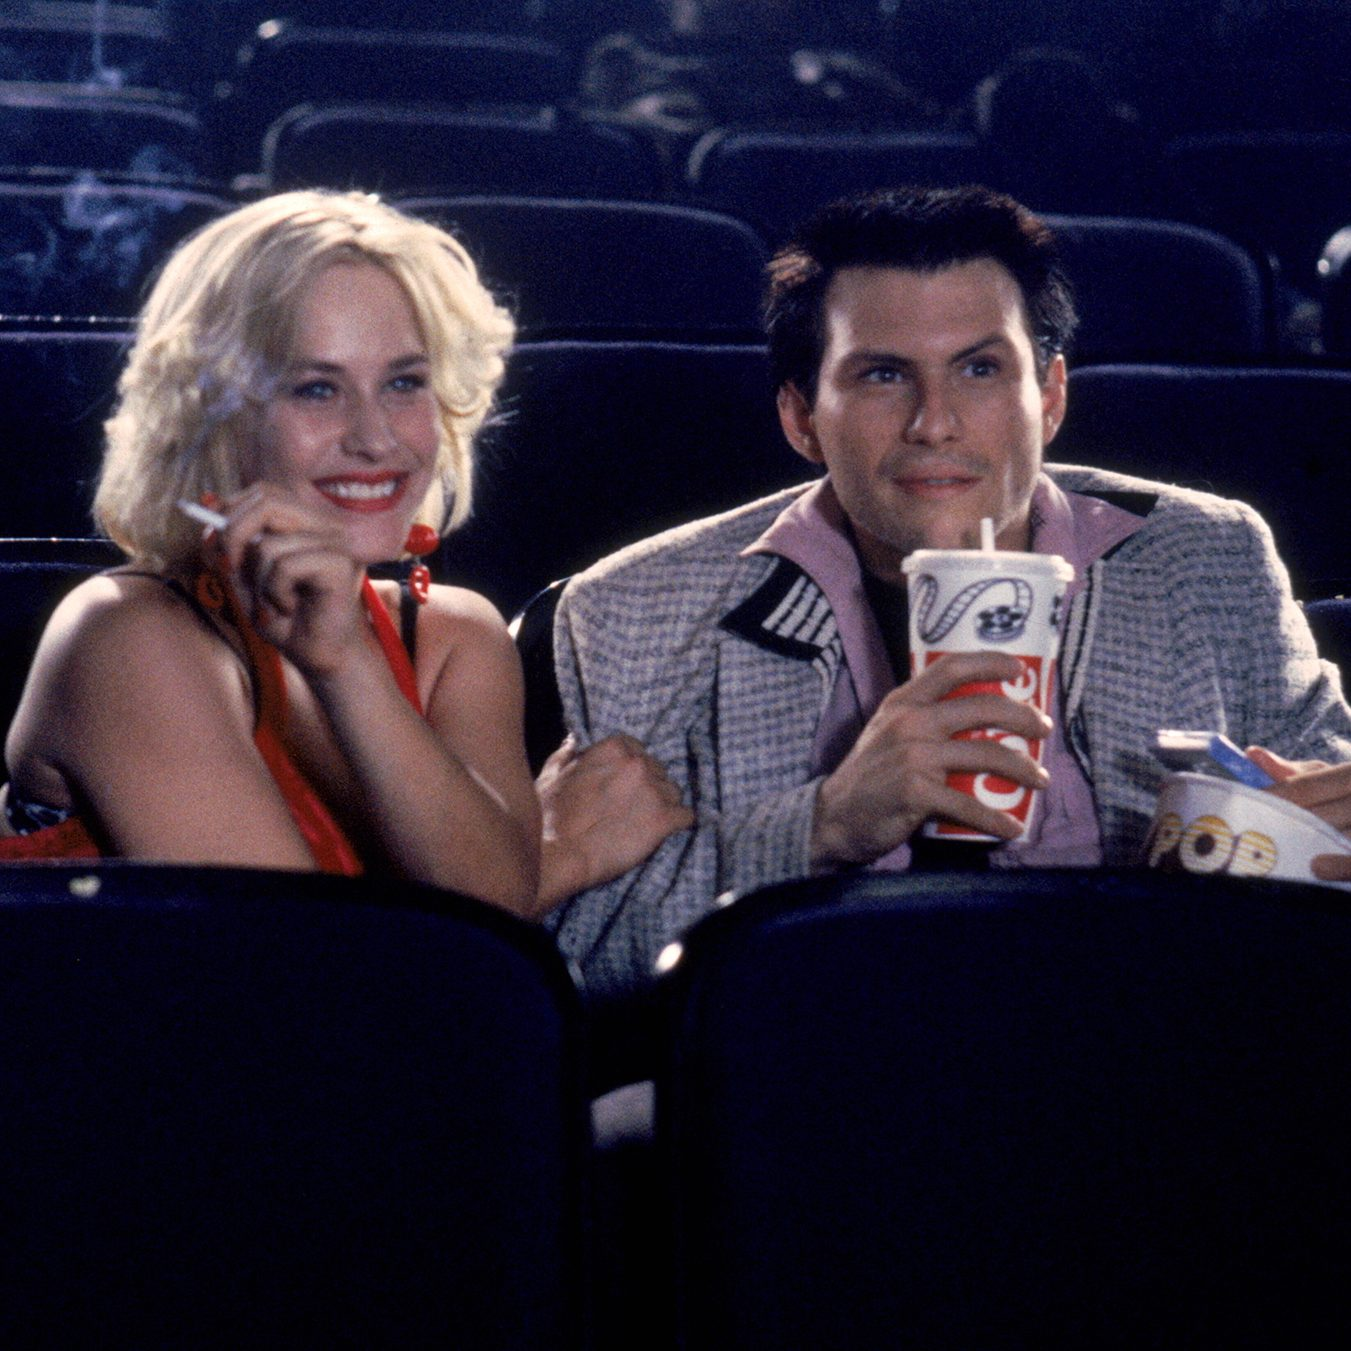 image 5 e1600183624188 20 Things You Didn't Know About The Classic Film True Romance